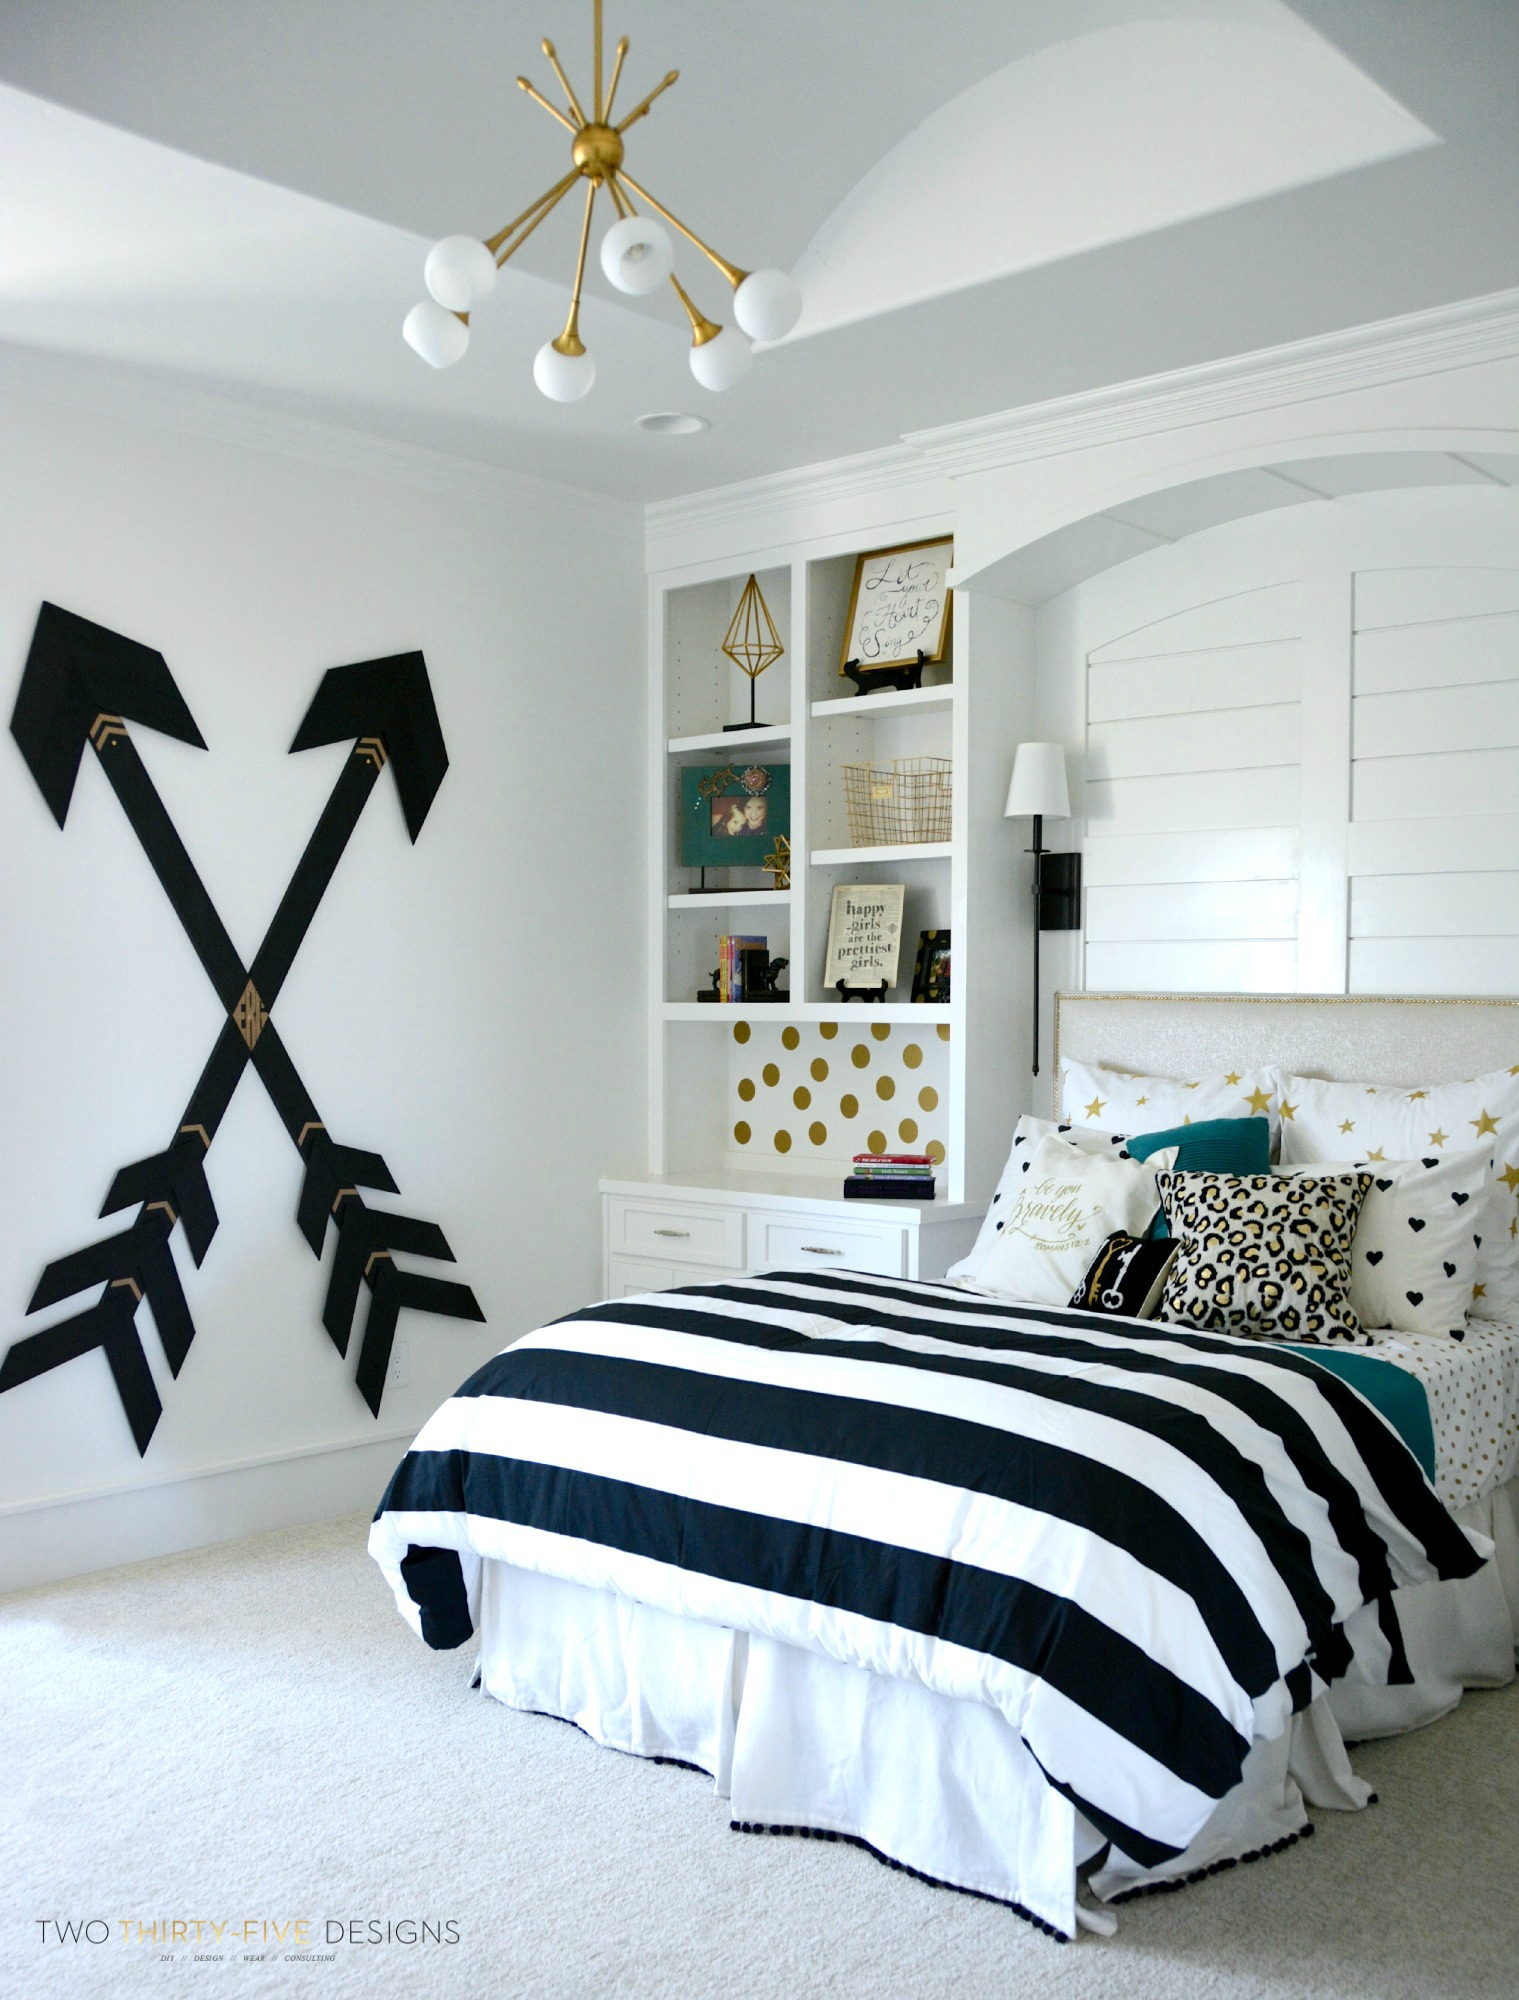 Pottery Barn Teen Girl Bedroom With Wooden Wall Arrows By Two Thirty~Five  Designs. I Am Absolutely In Love With This Space!